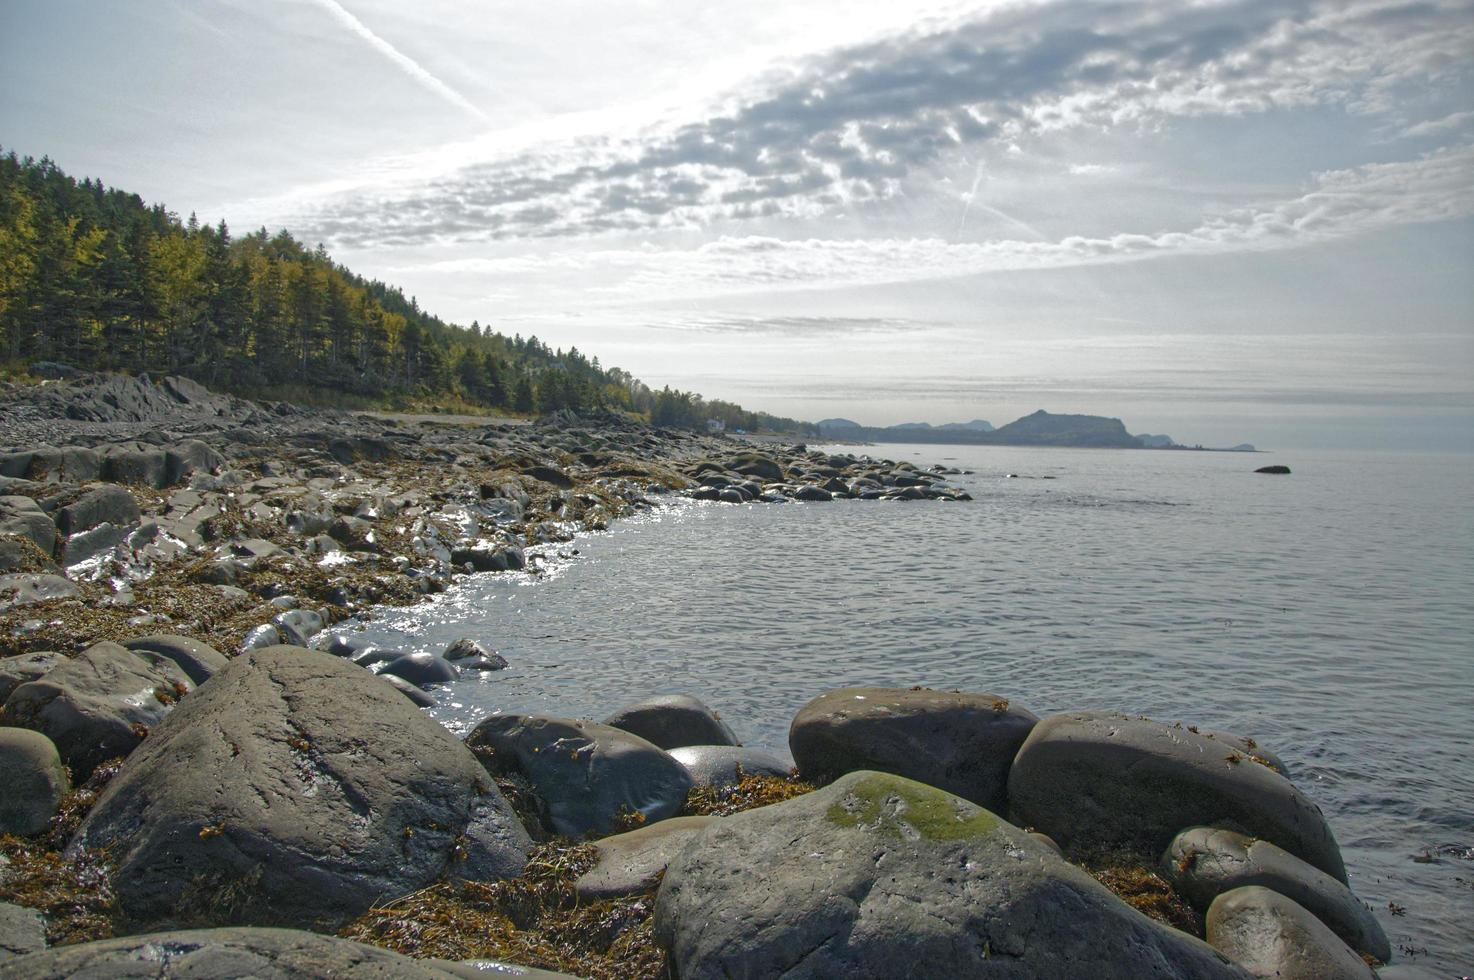 Rocks and shoreline next to body of water with cloudy blue sky in Quebec, Canada photo